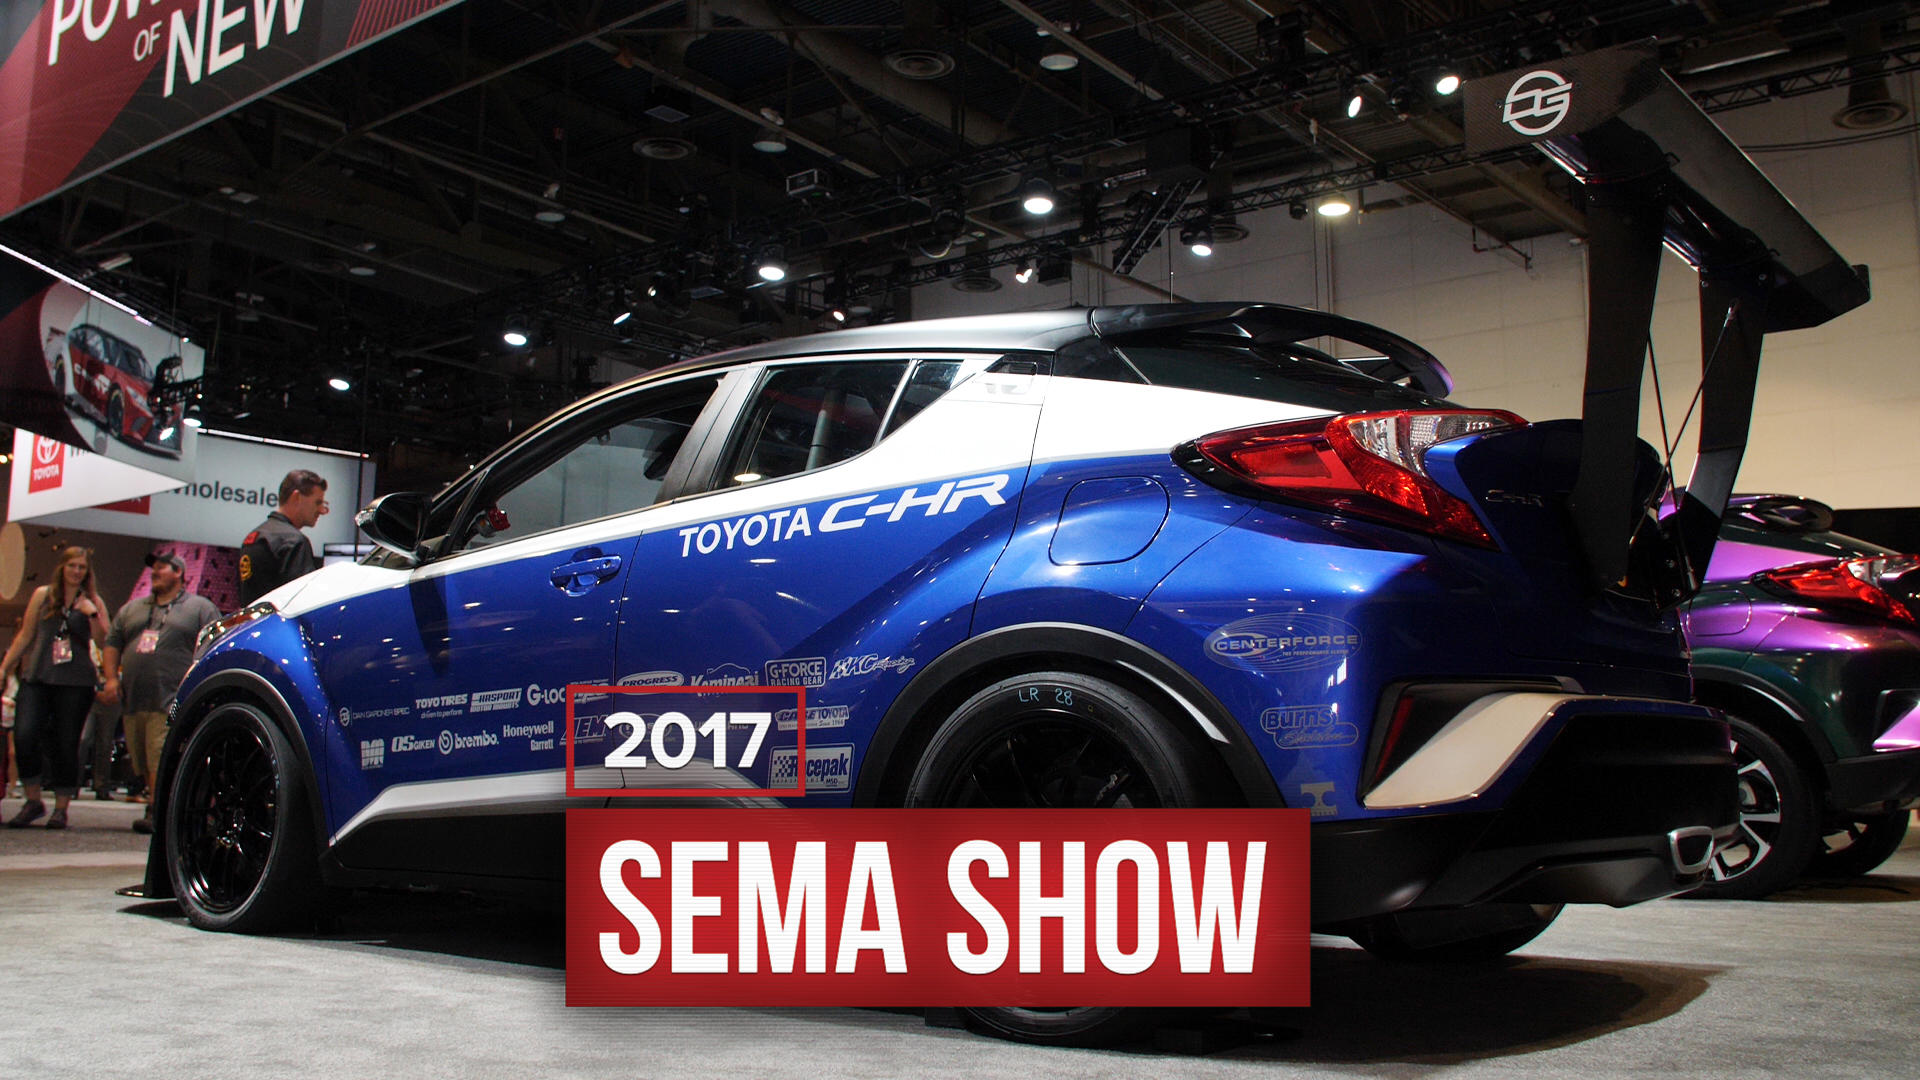 Video: Toyota built a 600-horsepower C-HR for SEMA and it's glorious